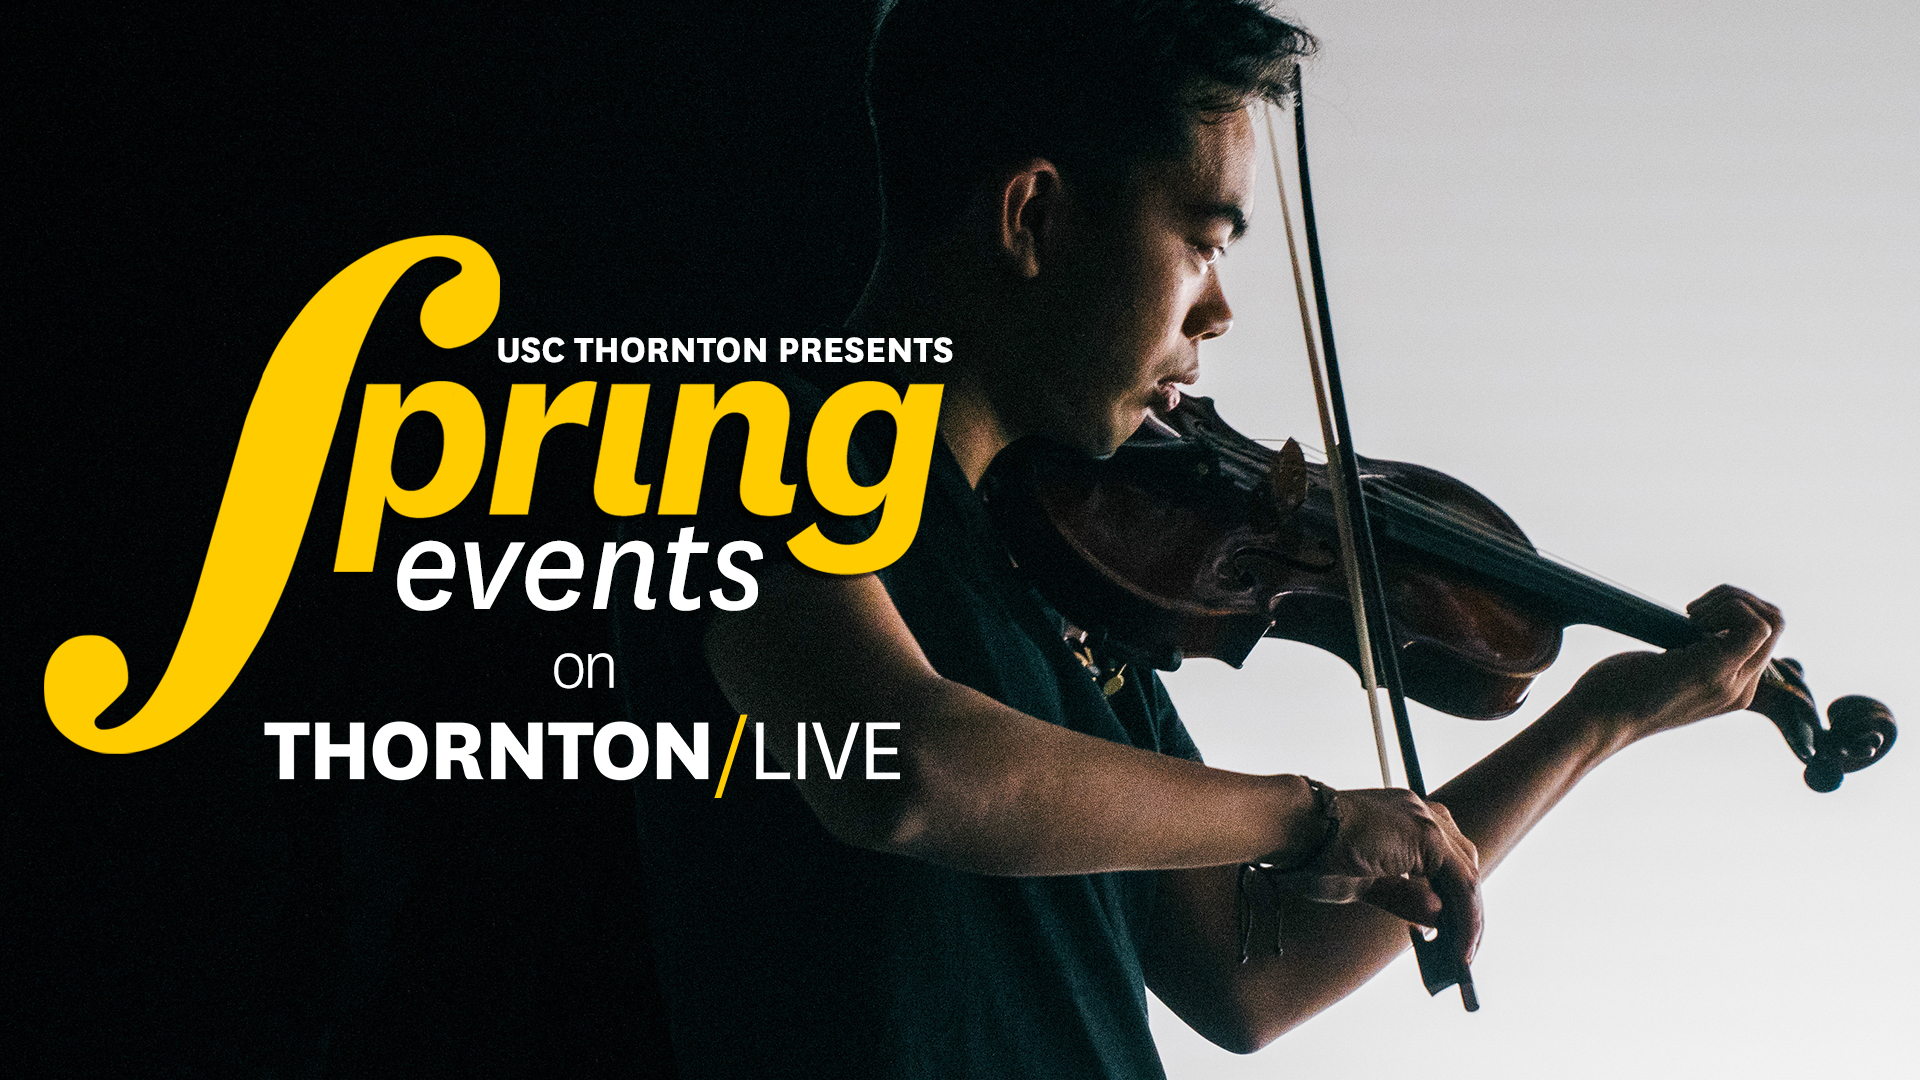 Violinist playing; USC Thornton Presents: Spring Events on Thornton/LIVE